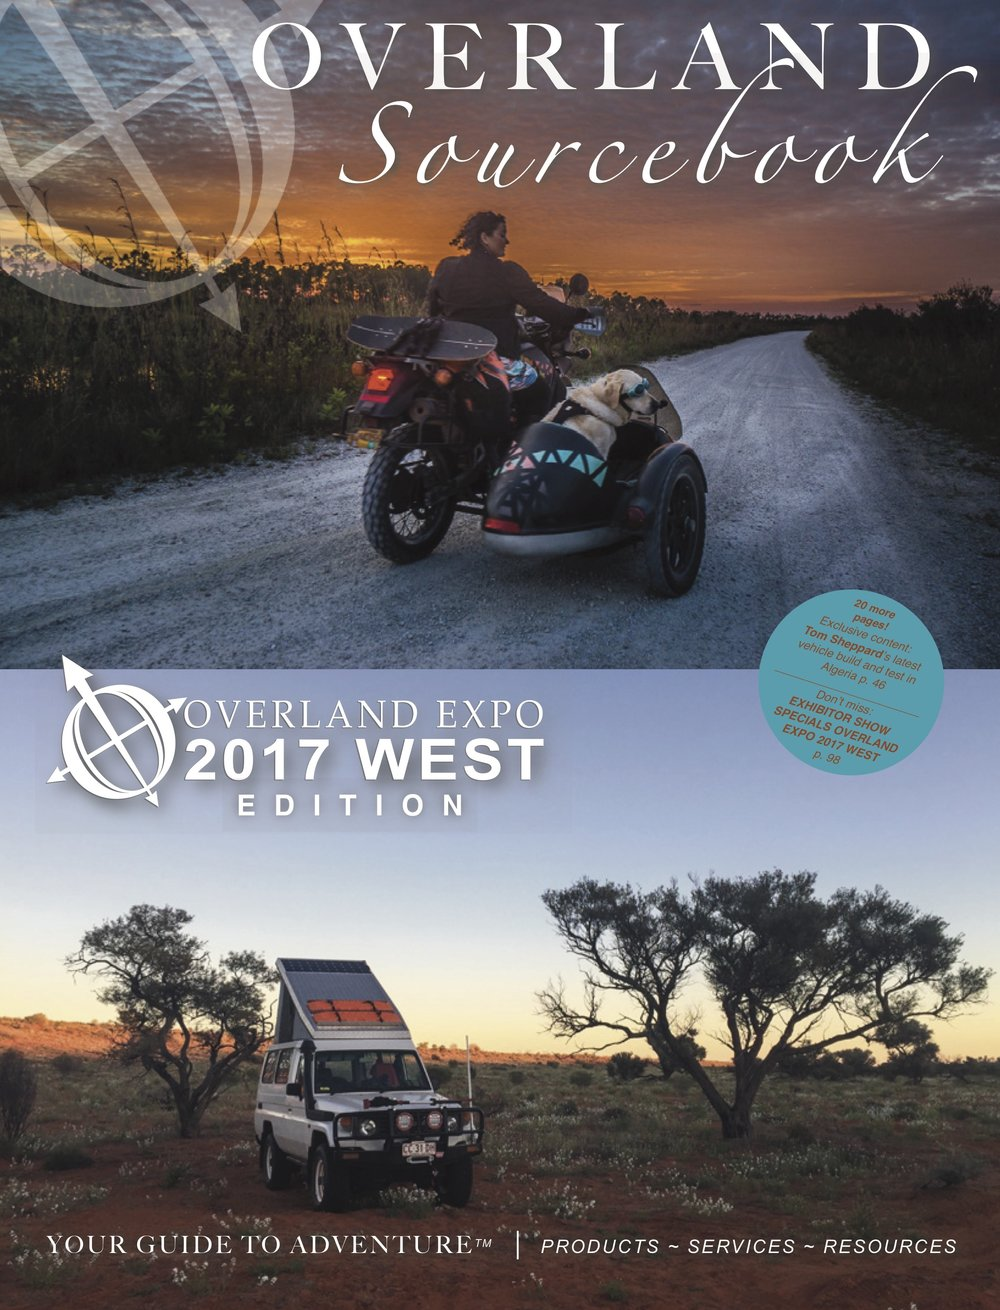 Download our 100-page   Overland Sourcebook   2017 WEST & 2016 EAST Editions